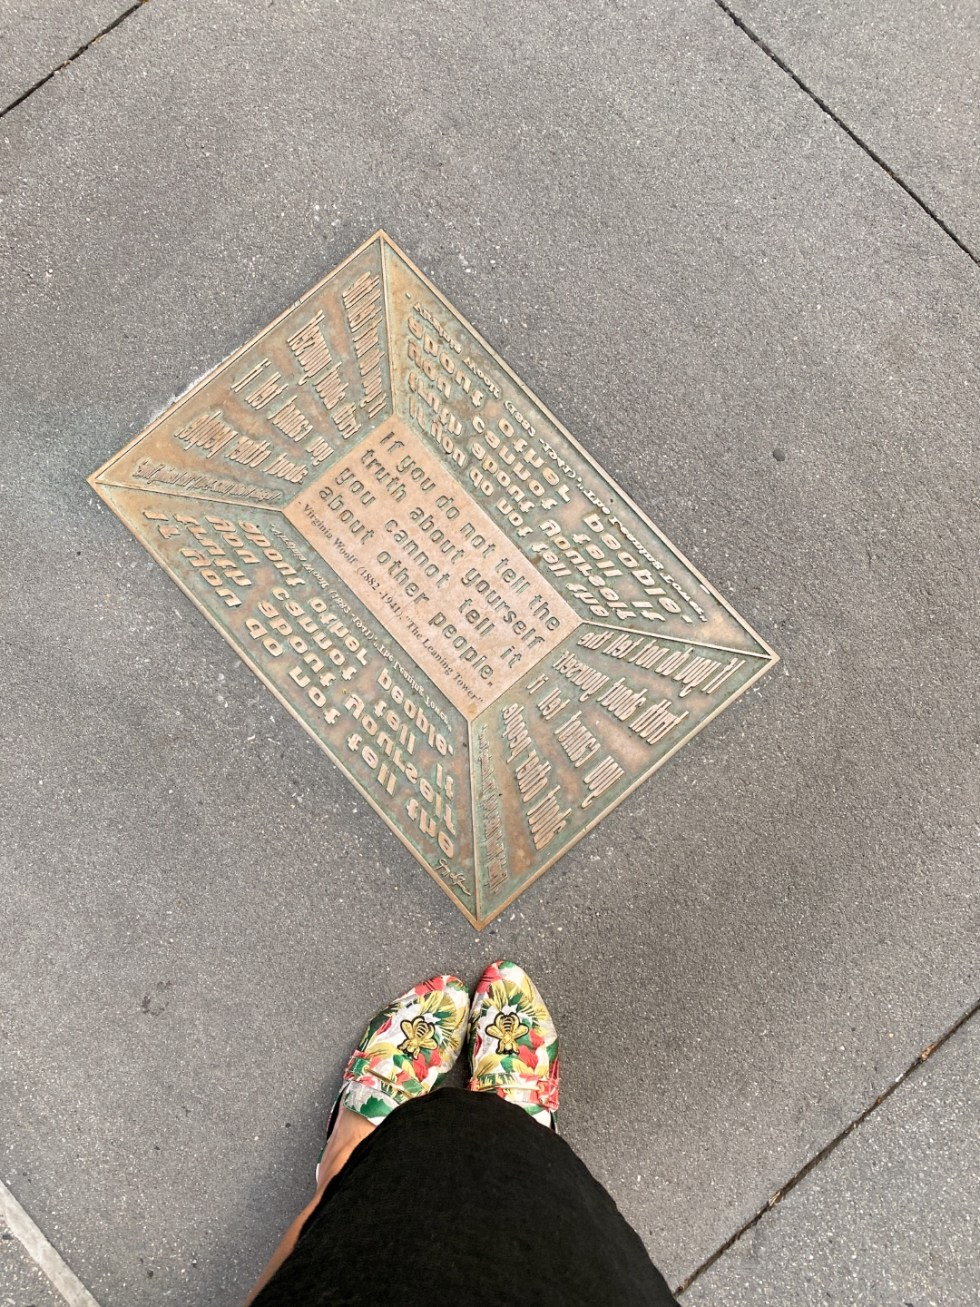 NYC Summer Weekend: Things to Do in NYC in the Summer - I'm Fixin' To - @imfixintoblog   NYC Summer Weekend by popular NC travel blog, I'm Fixin' To: image of a metal sign embedded in a sidewalk.